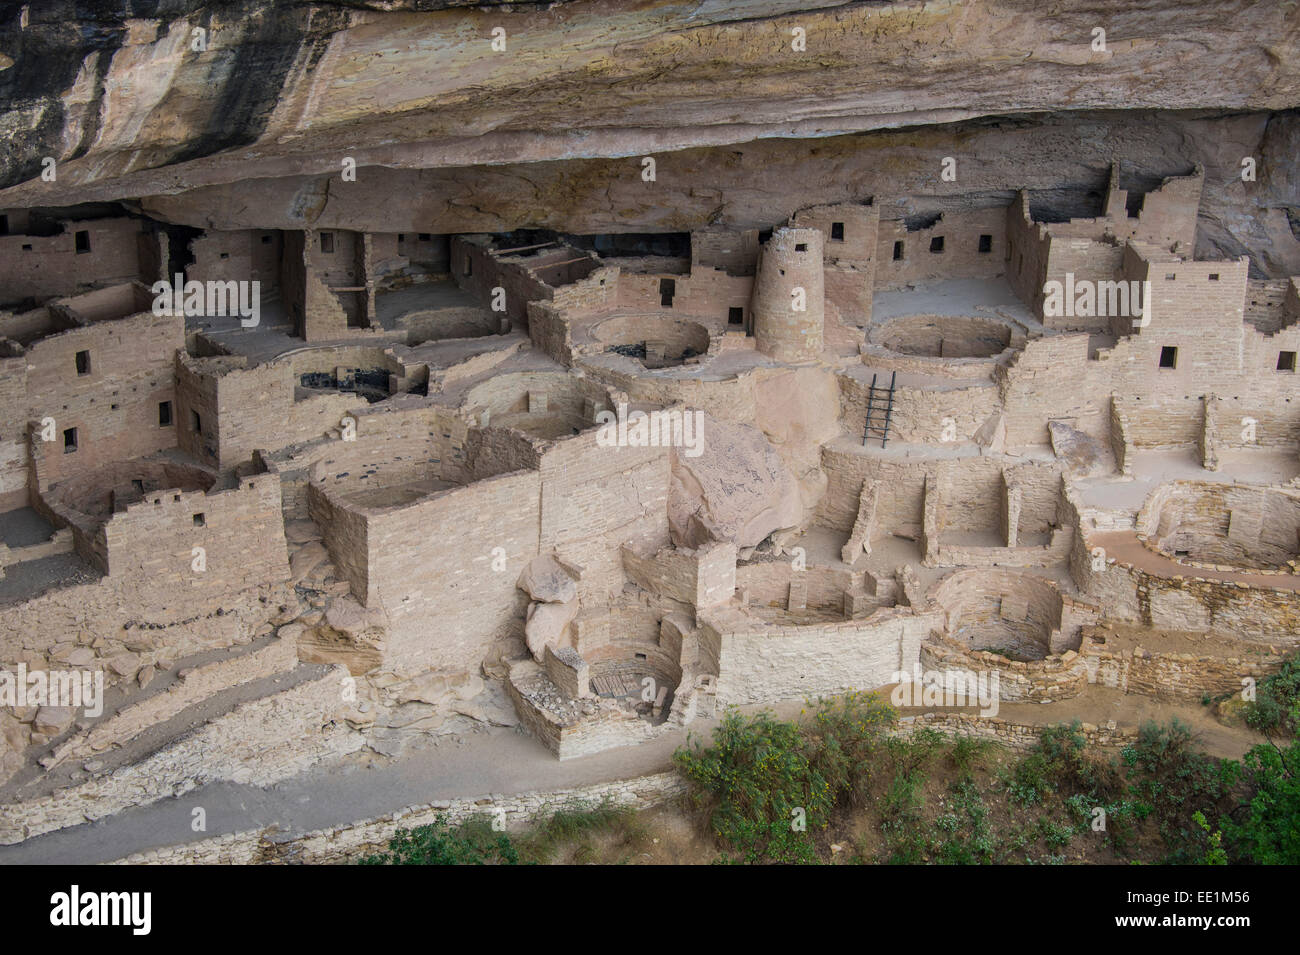 The Cliff Palace Indian dwelling, Mesa Verde National Park, UNESCO World Heritage Site, Colorado, United States - Stock Image